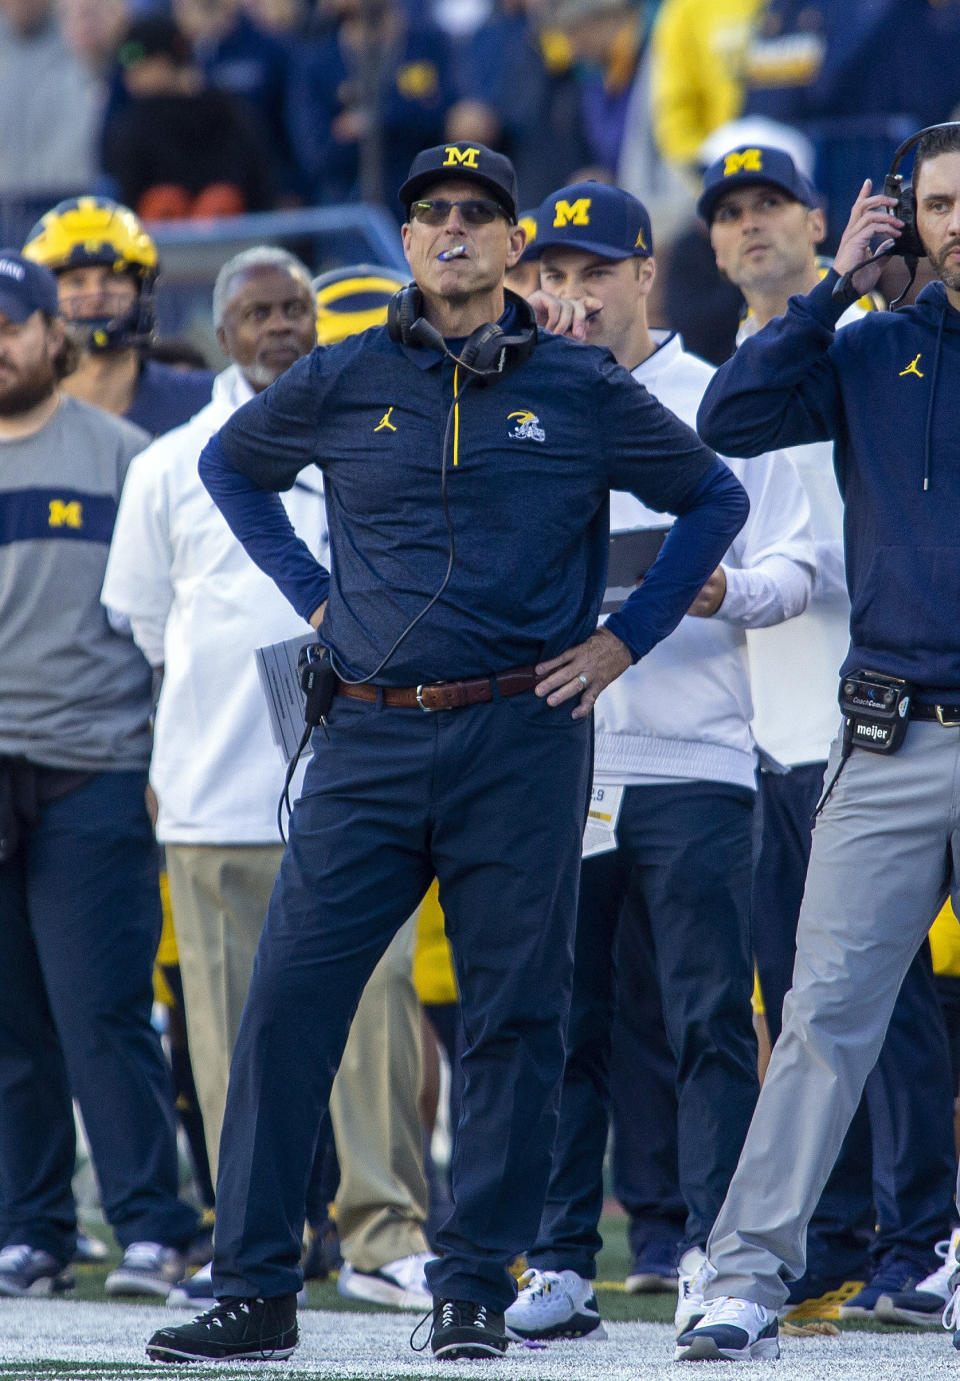 Michigan head coach Jim Harbaugh looks at the scoreboard from the sideline in the fourth quarter of an NCAA college football game against Rutgers in Ann Arbor, Mich., Saturday, Sept. 25, 2021. Michigan won 20-13. (AP Photo/Tony Ding)